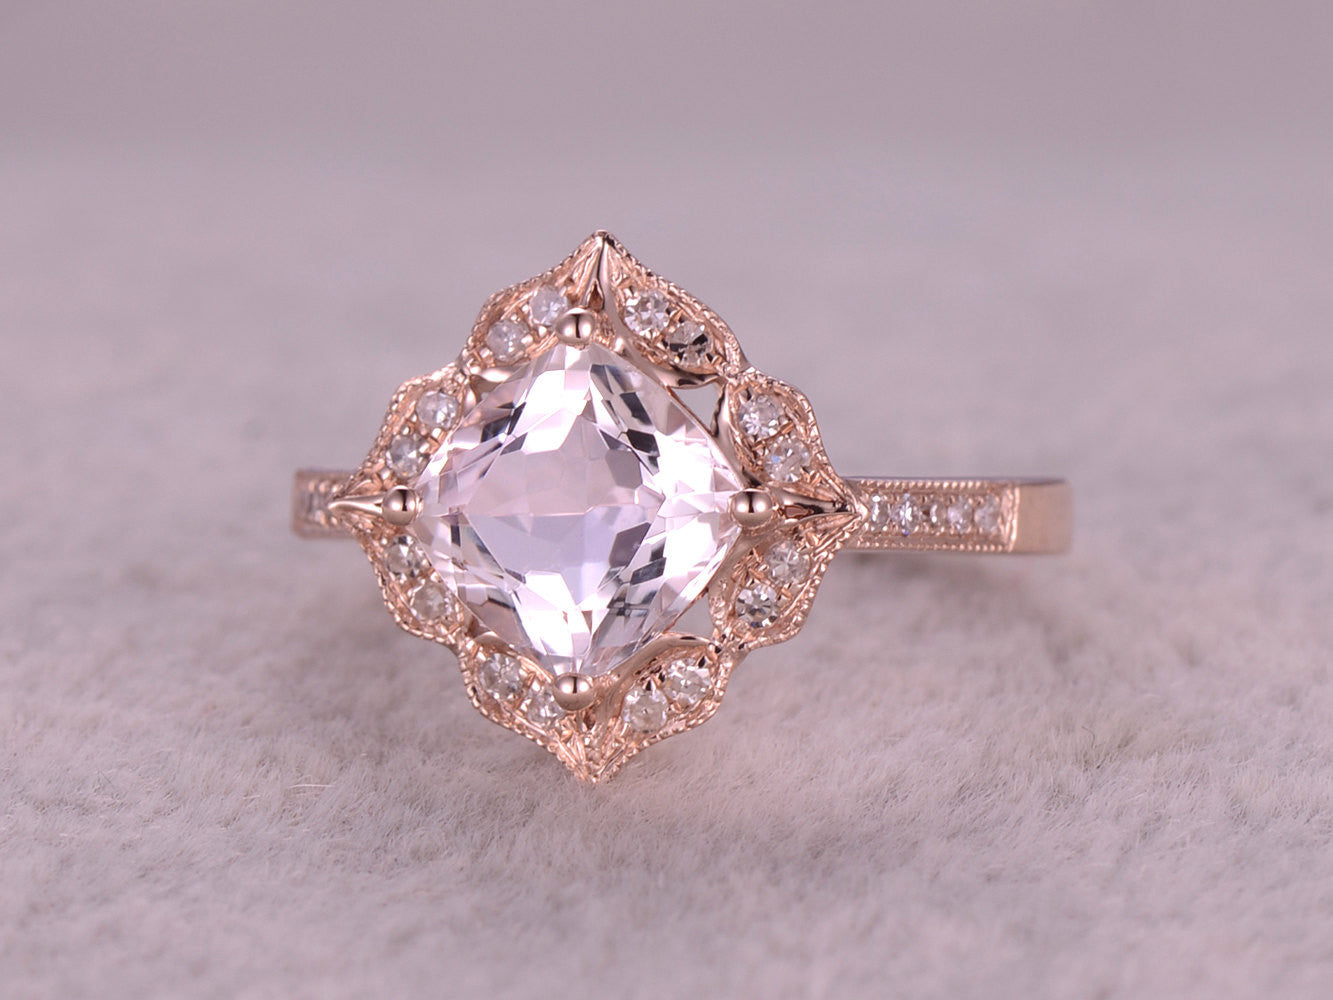 8mm Cushion Morganite Engagement ring Rose gold,Diamond wedding band,Promise Ring,Bridal Ring,Milgrain,Unique underneath,Custom made setting